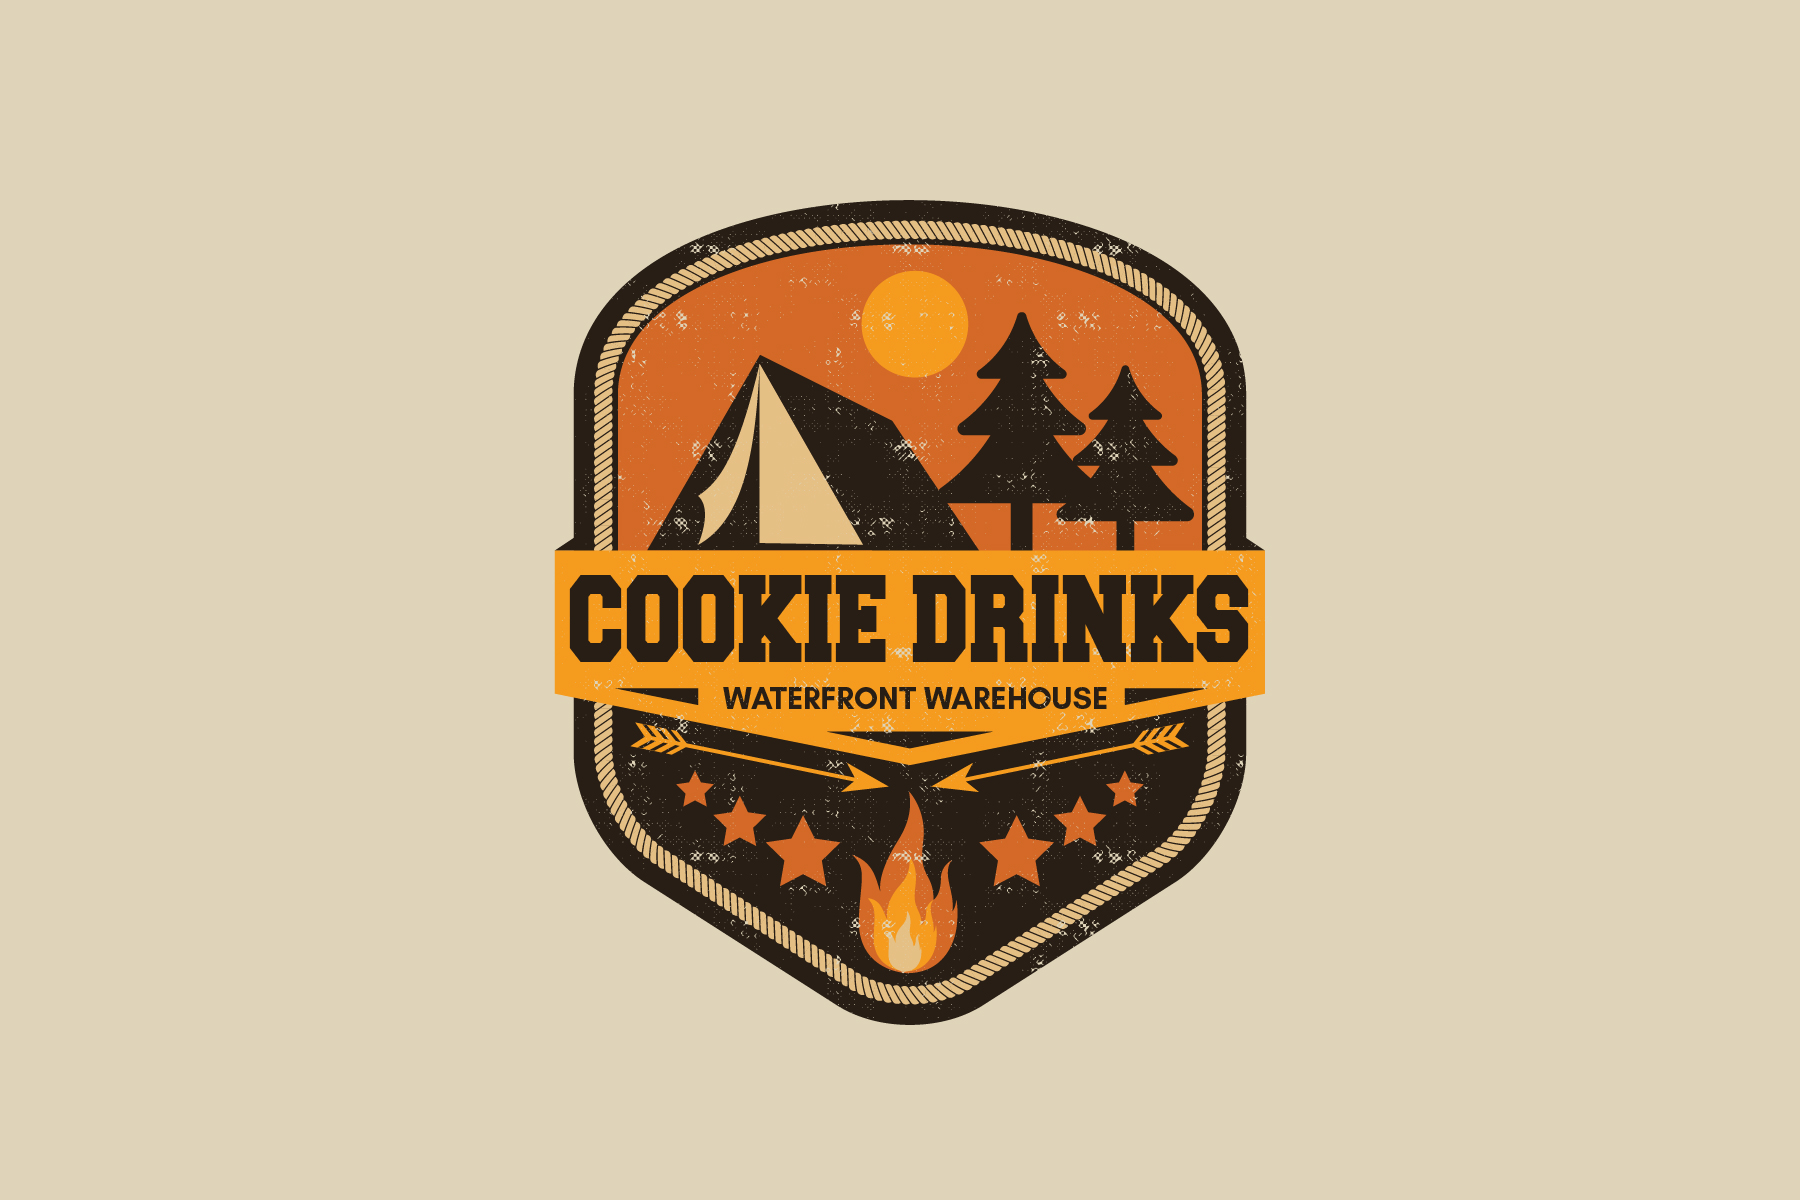 Waterfront Warehouse Cookie Drinks 2021